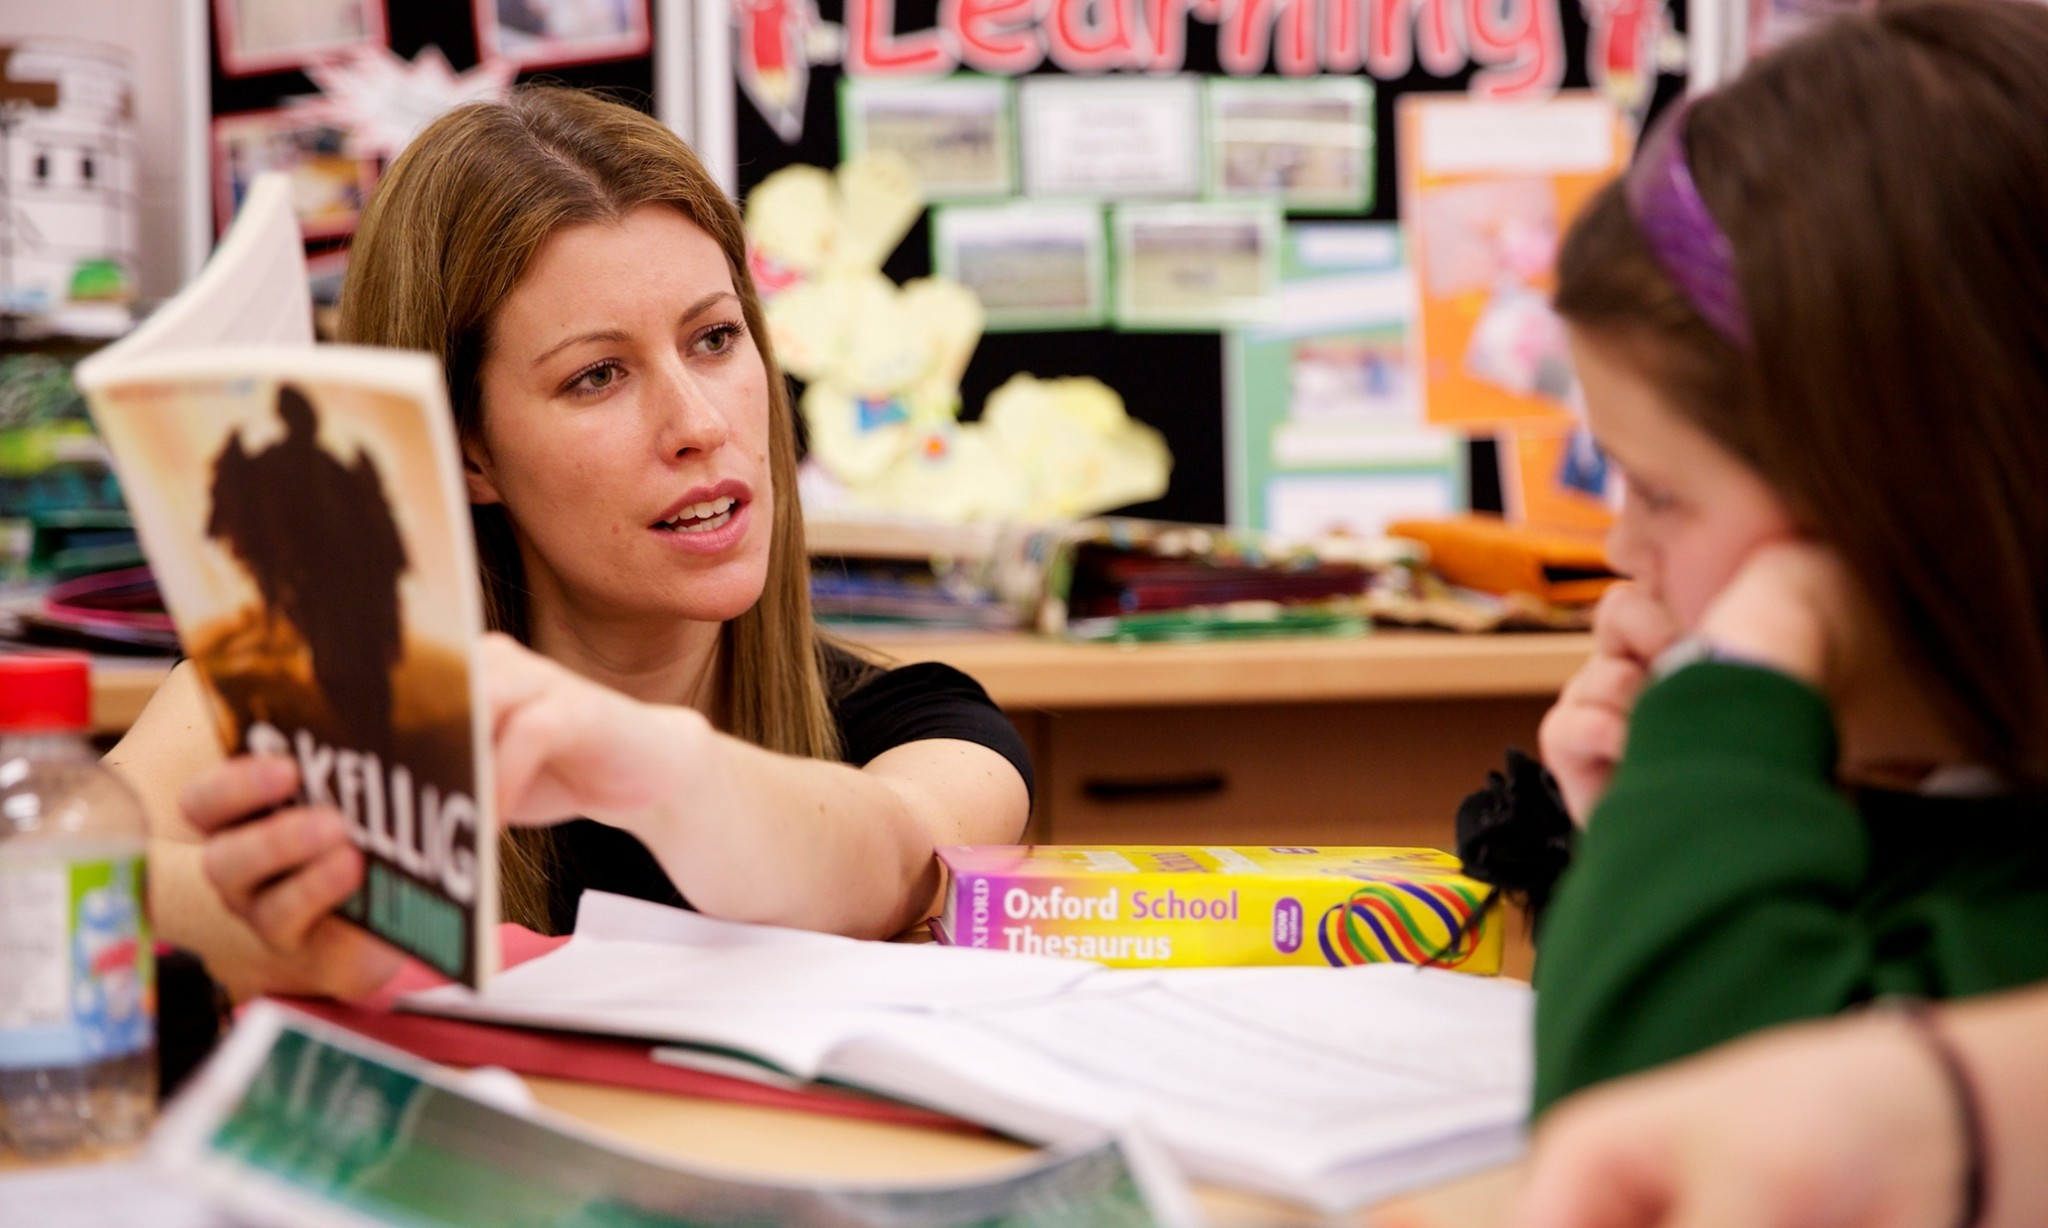 Teaching was my dream job, until I discovered the reality